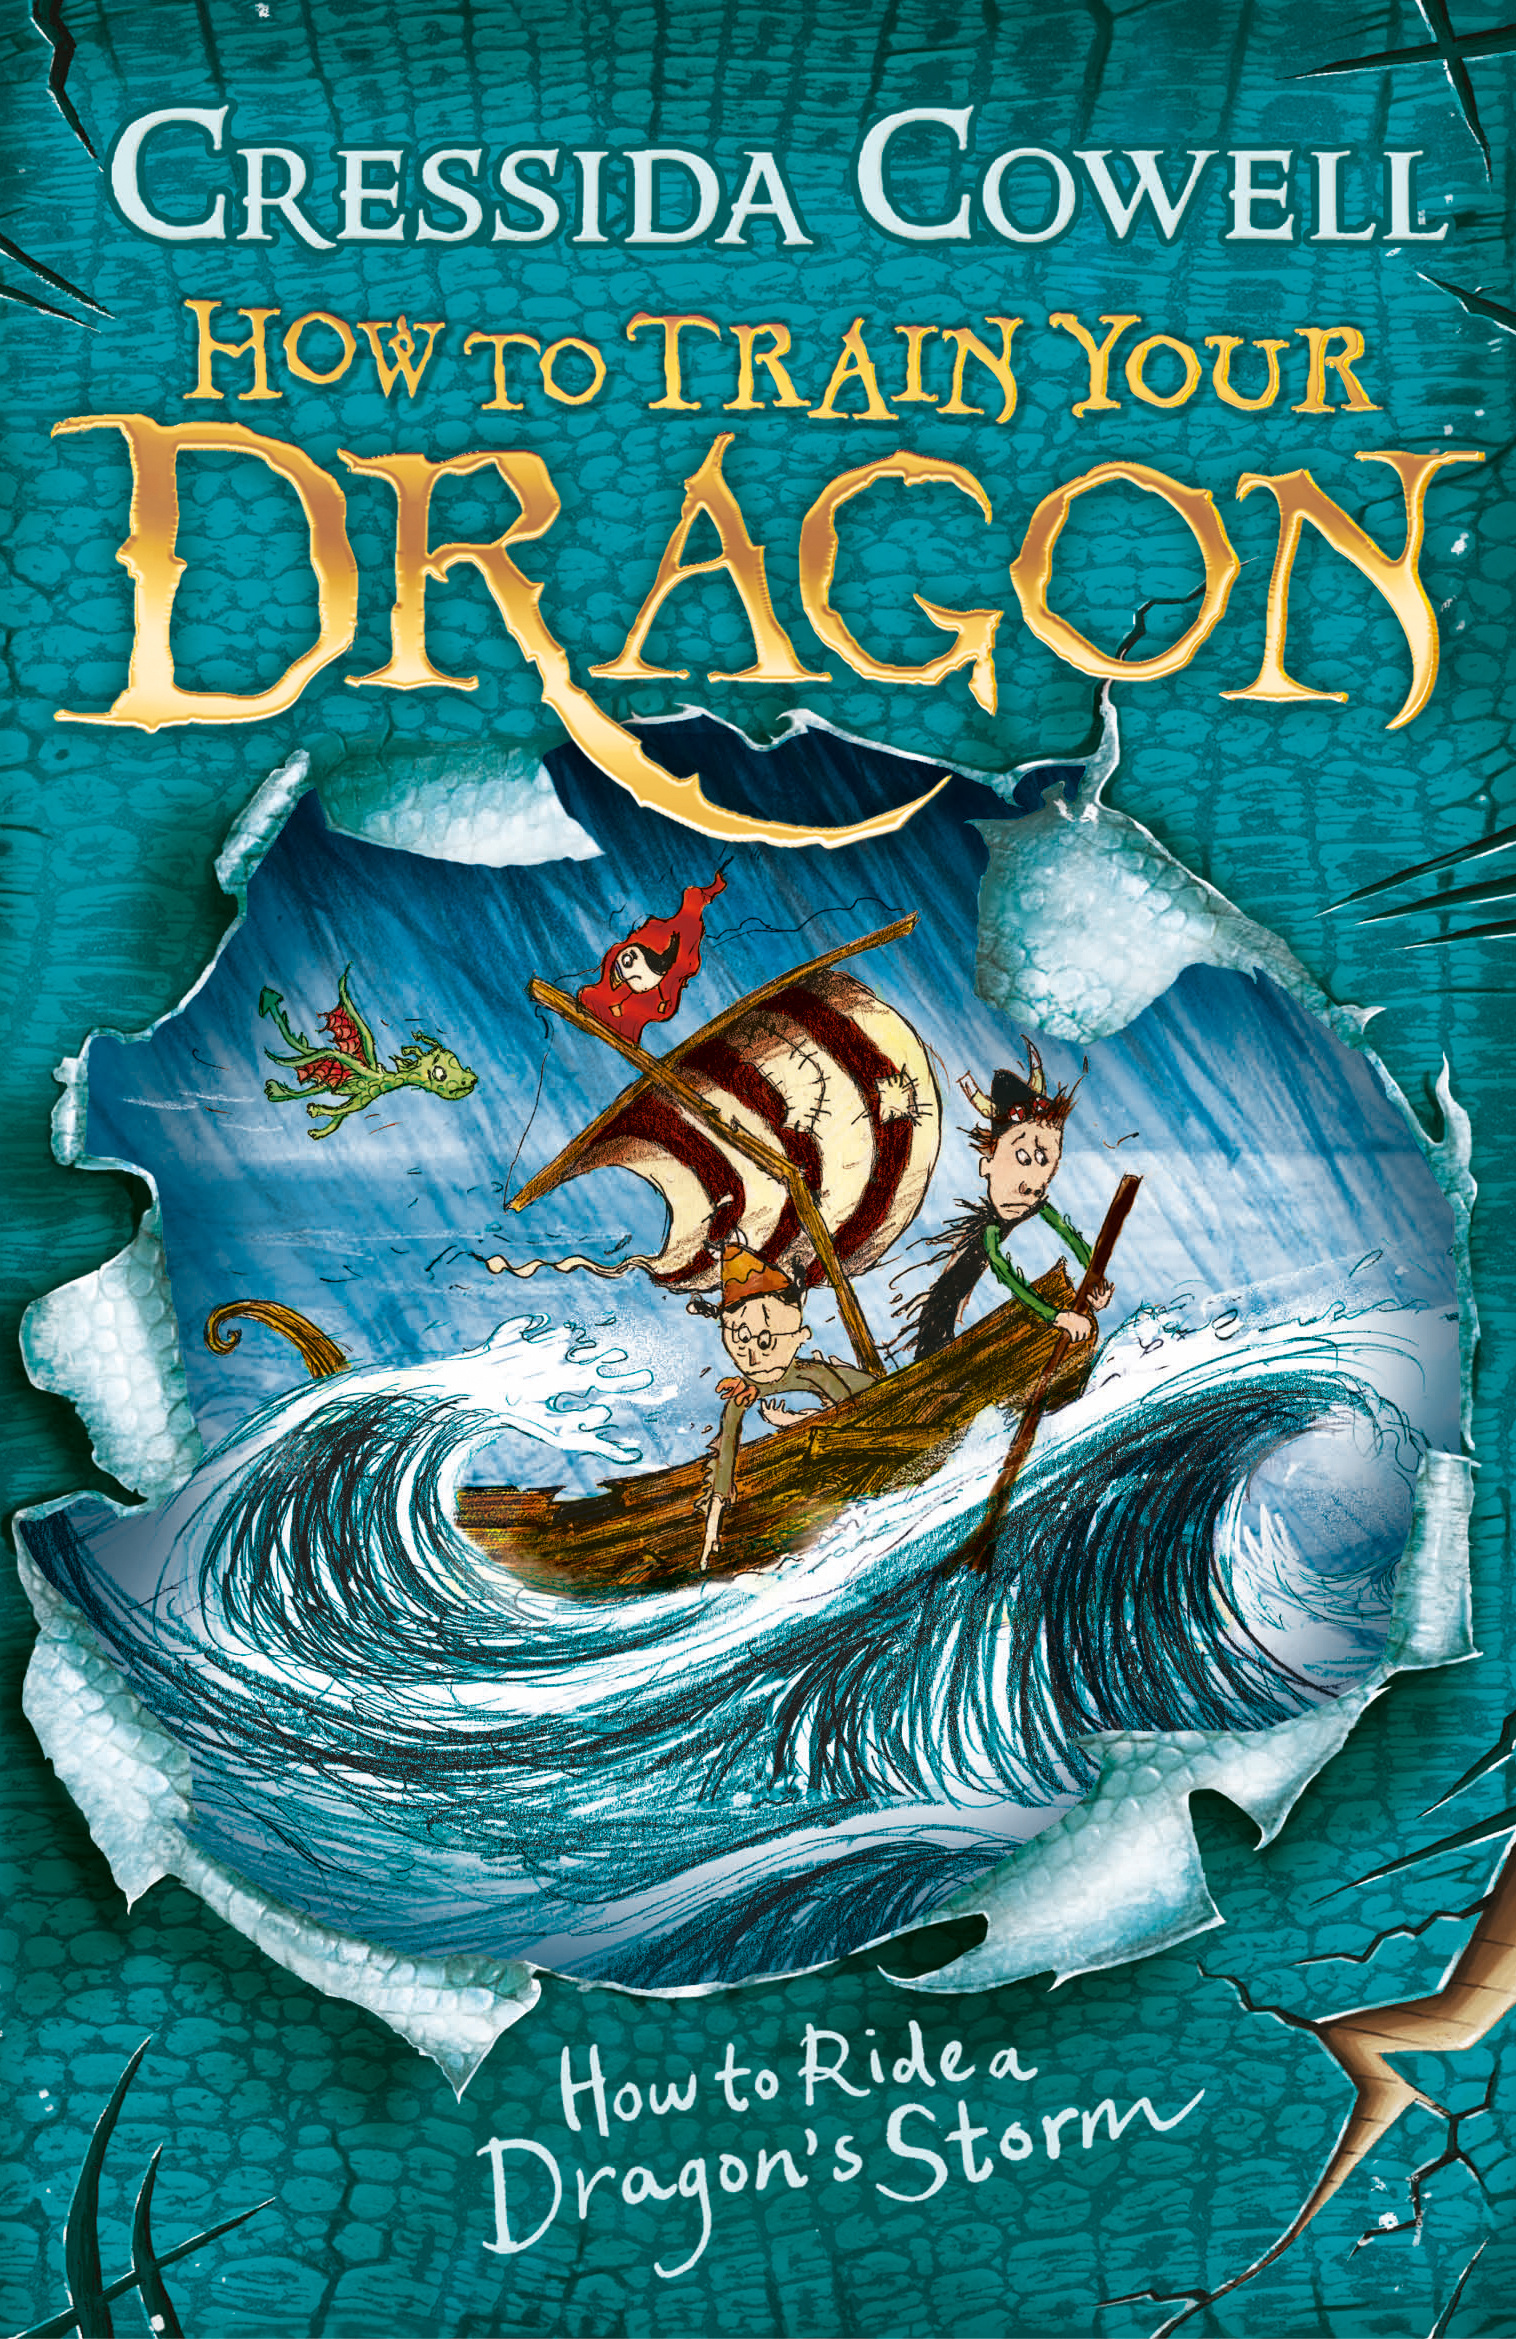 How to train your dragon how to ride a dragons storm book 7 by how to train your dragon for national curriculum key stage 1 for national curriculum key stage 2 interest age from c 7 years fiction general fiction ccuart Images